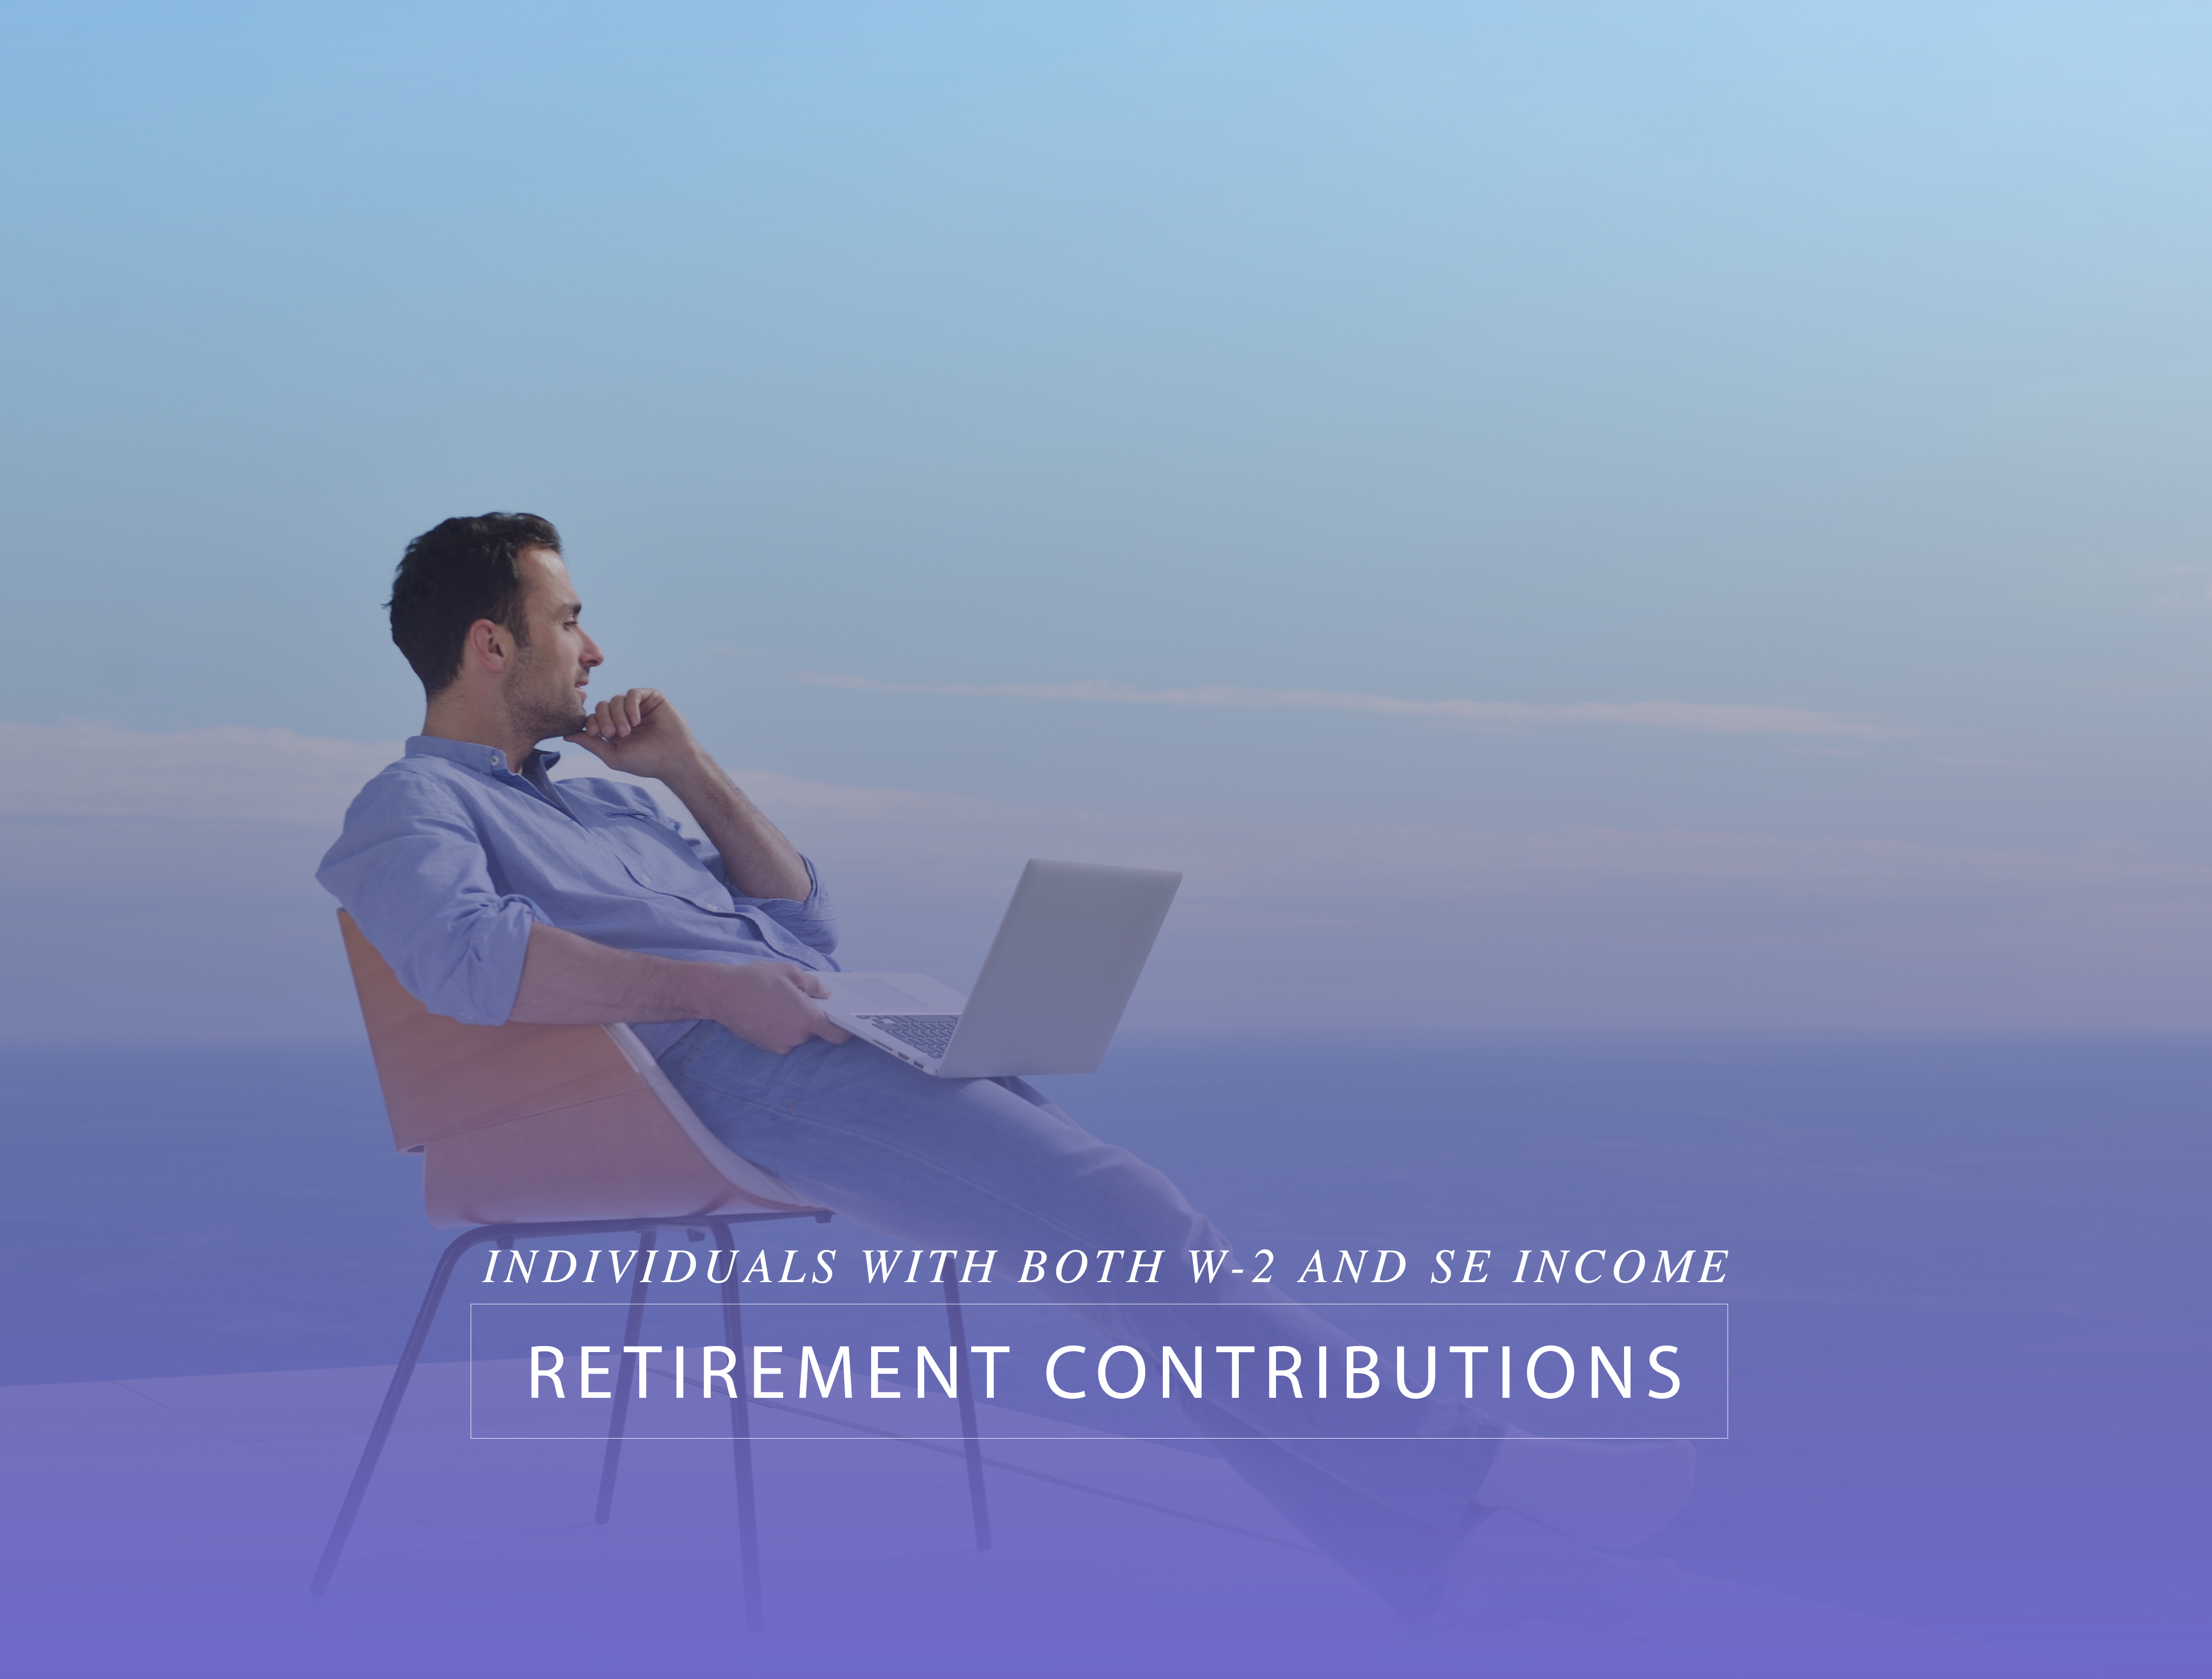 Retirement Contributions – Individuals with both W-2 and SE Income